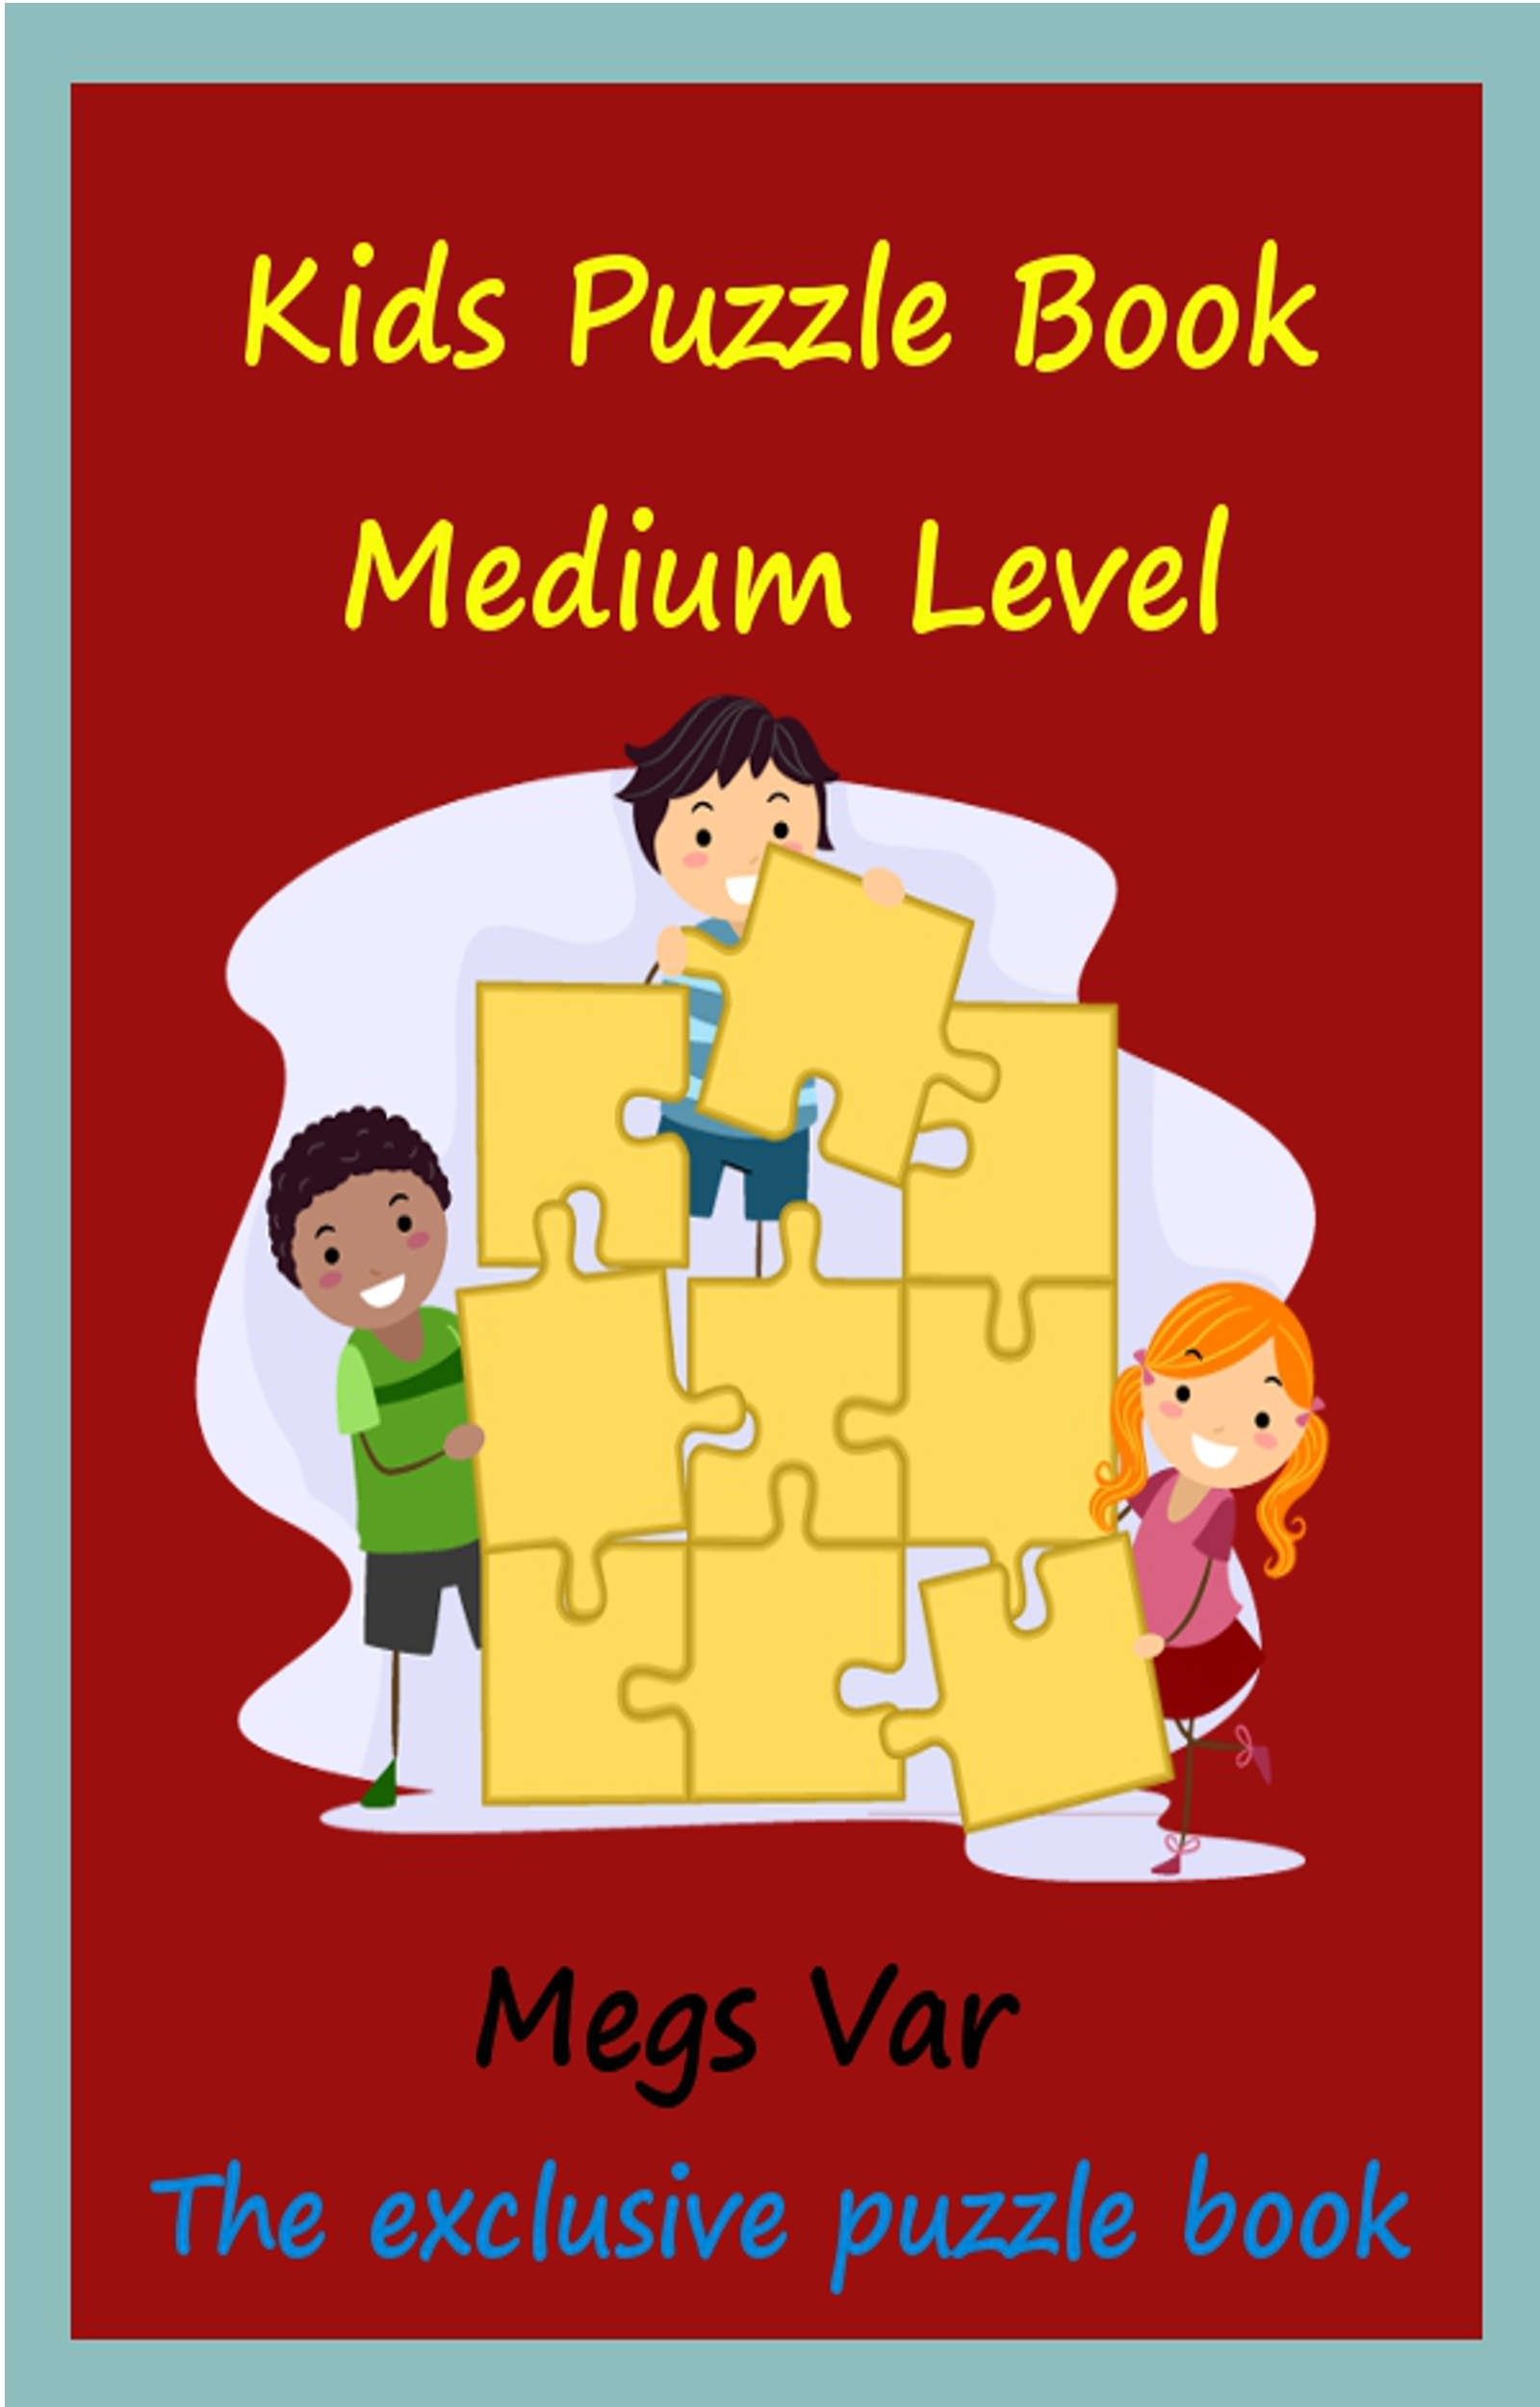 Kids Puzzle Book: Kids Puzzle Book Medium Level By: Megs Var